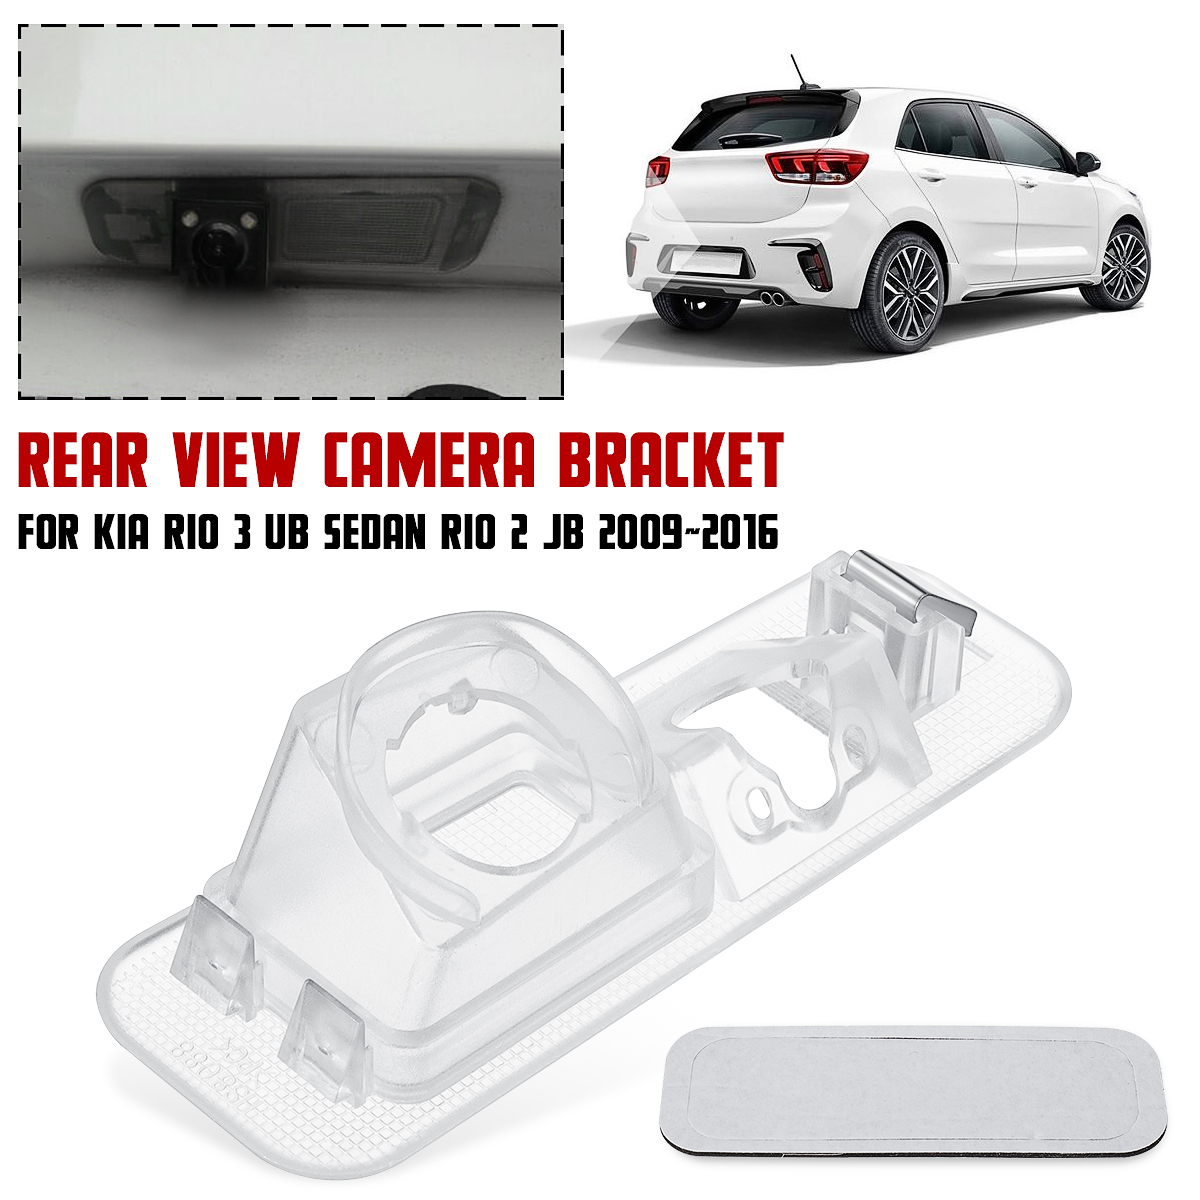 Car Parking Rear View Camera Bracket License Plate Cover Case Housing For Kia Rio 3 UB Sedan Rio 2 JB 2009 2010 2011 2012 - 2016